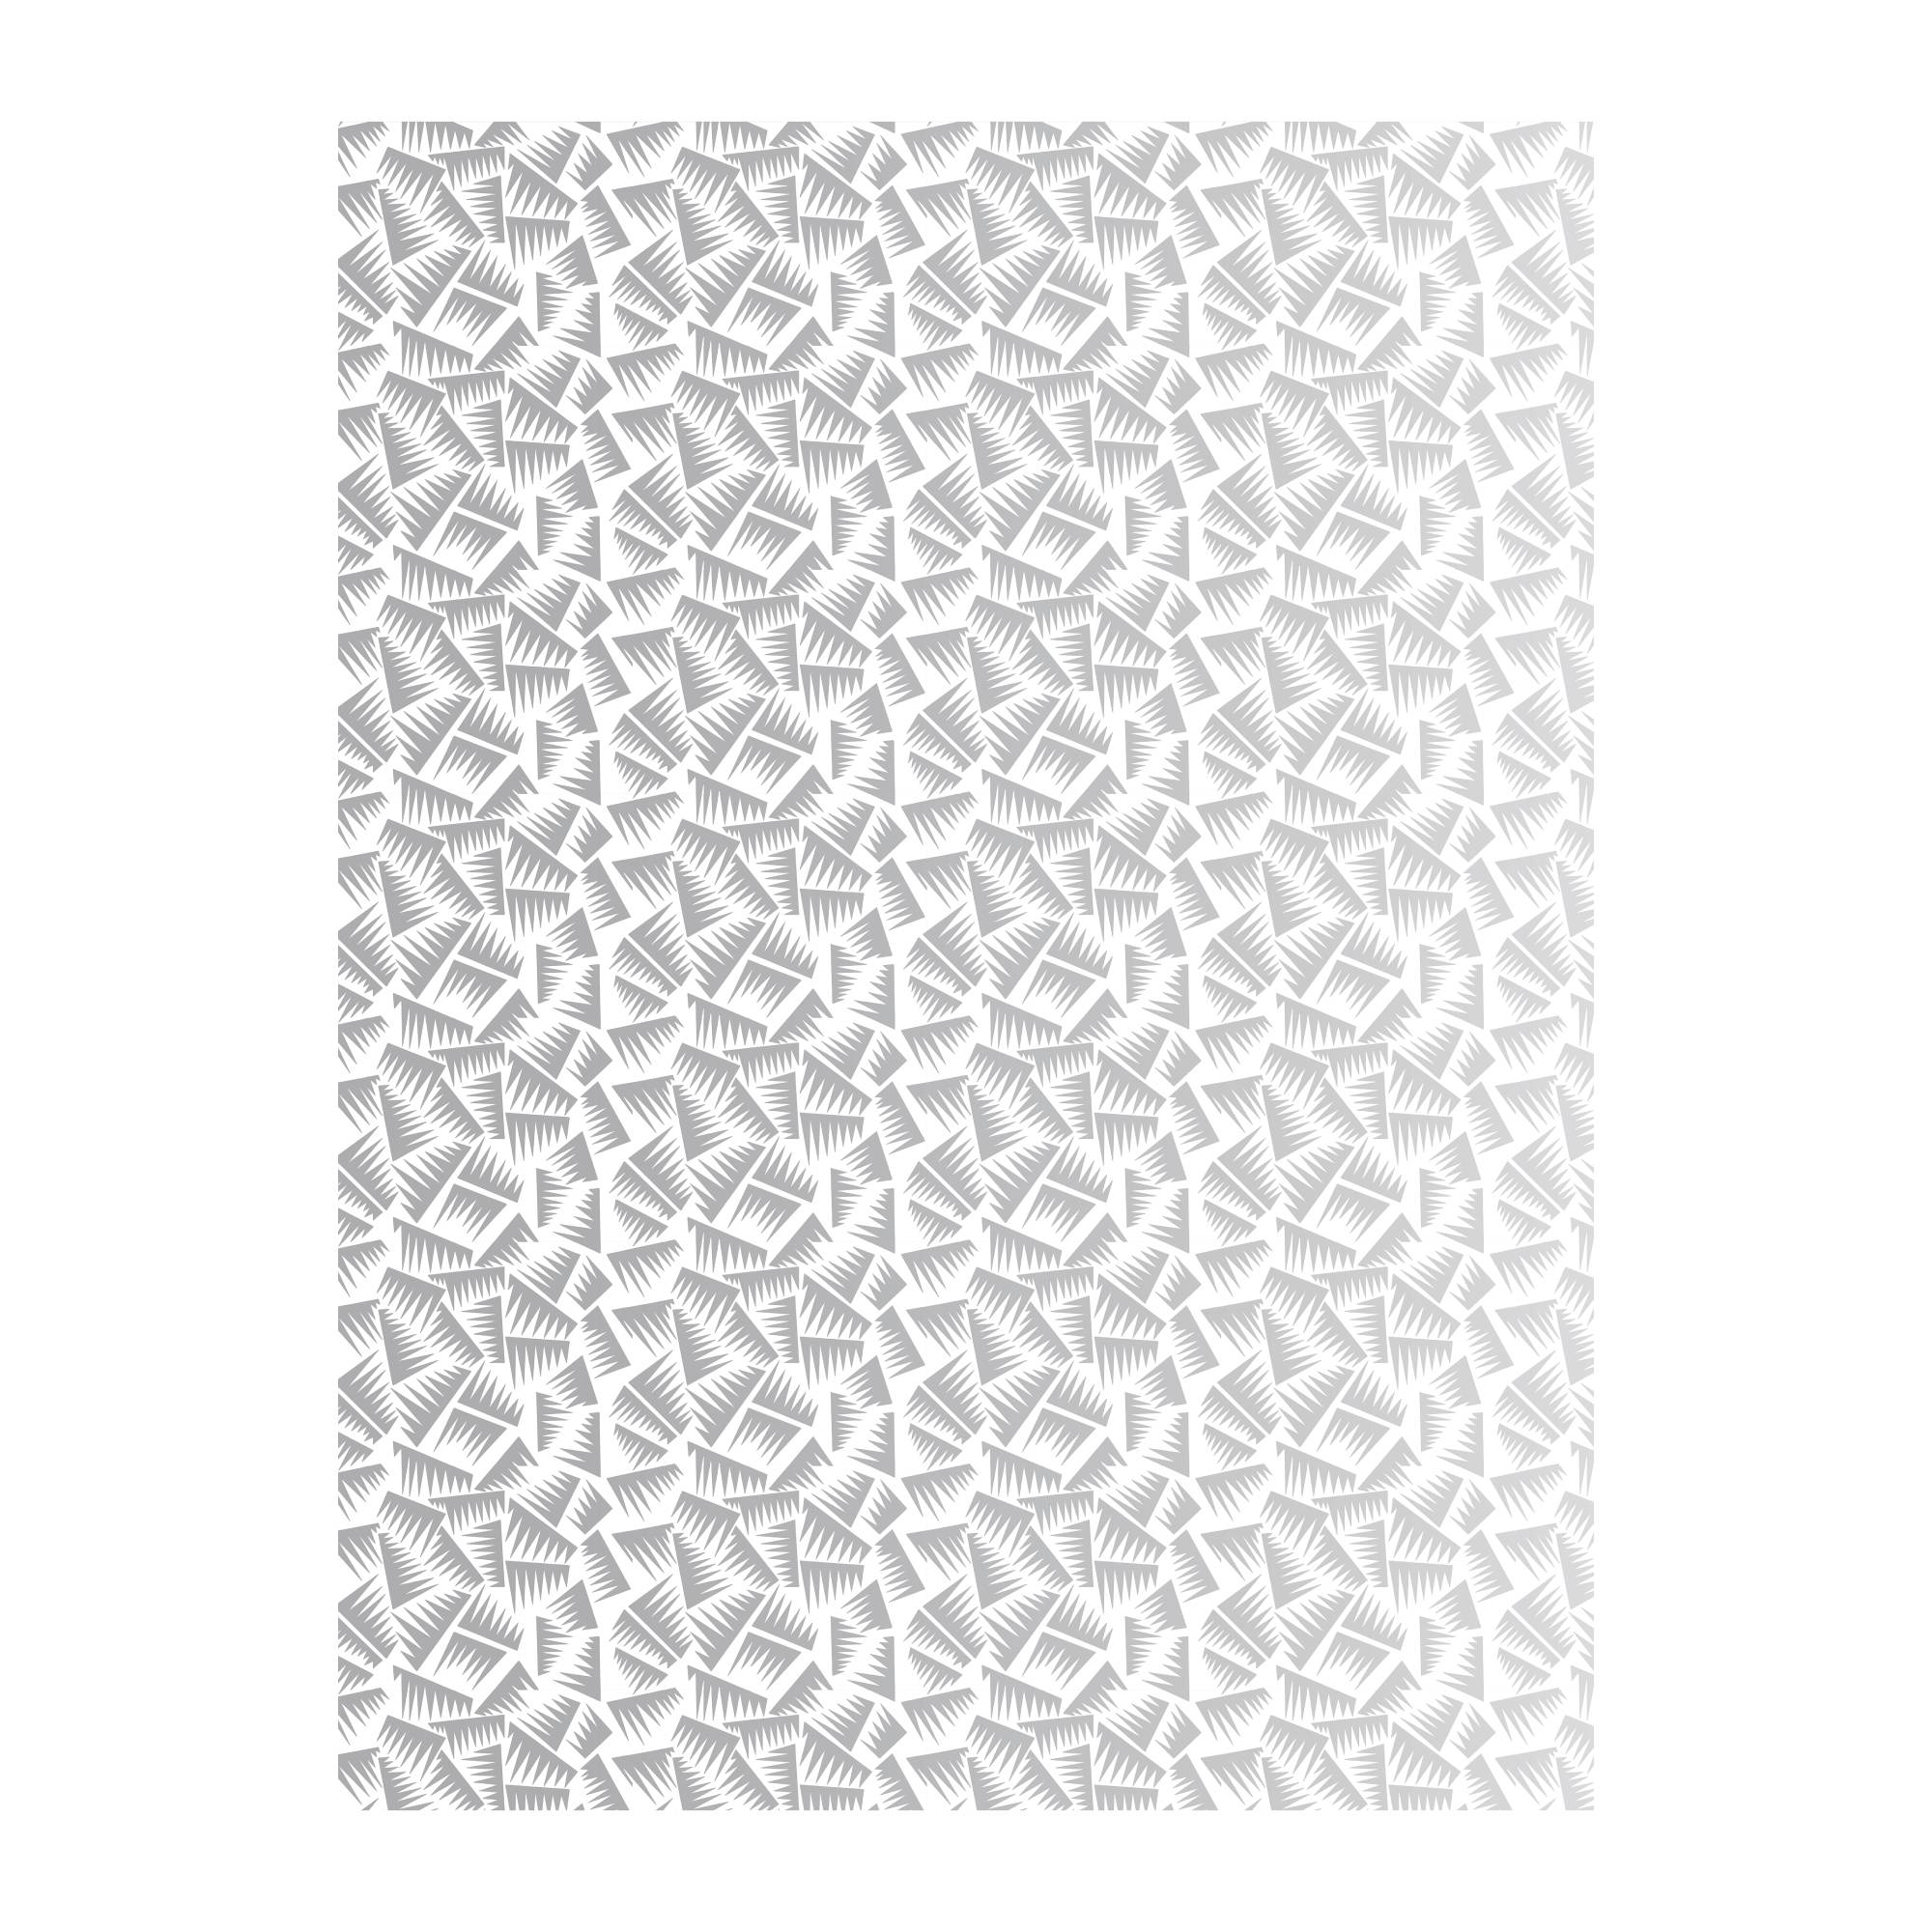 JER Wallpaper: White + Silver